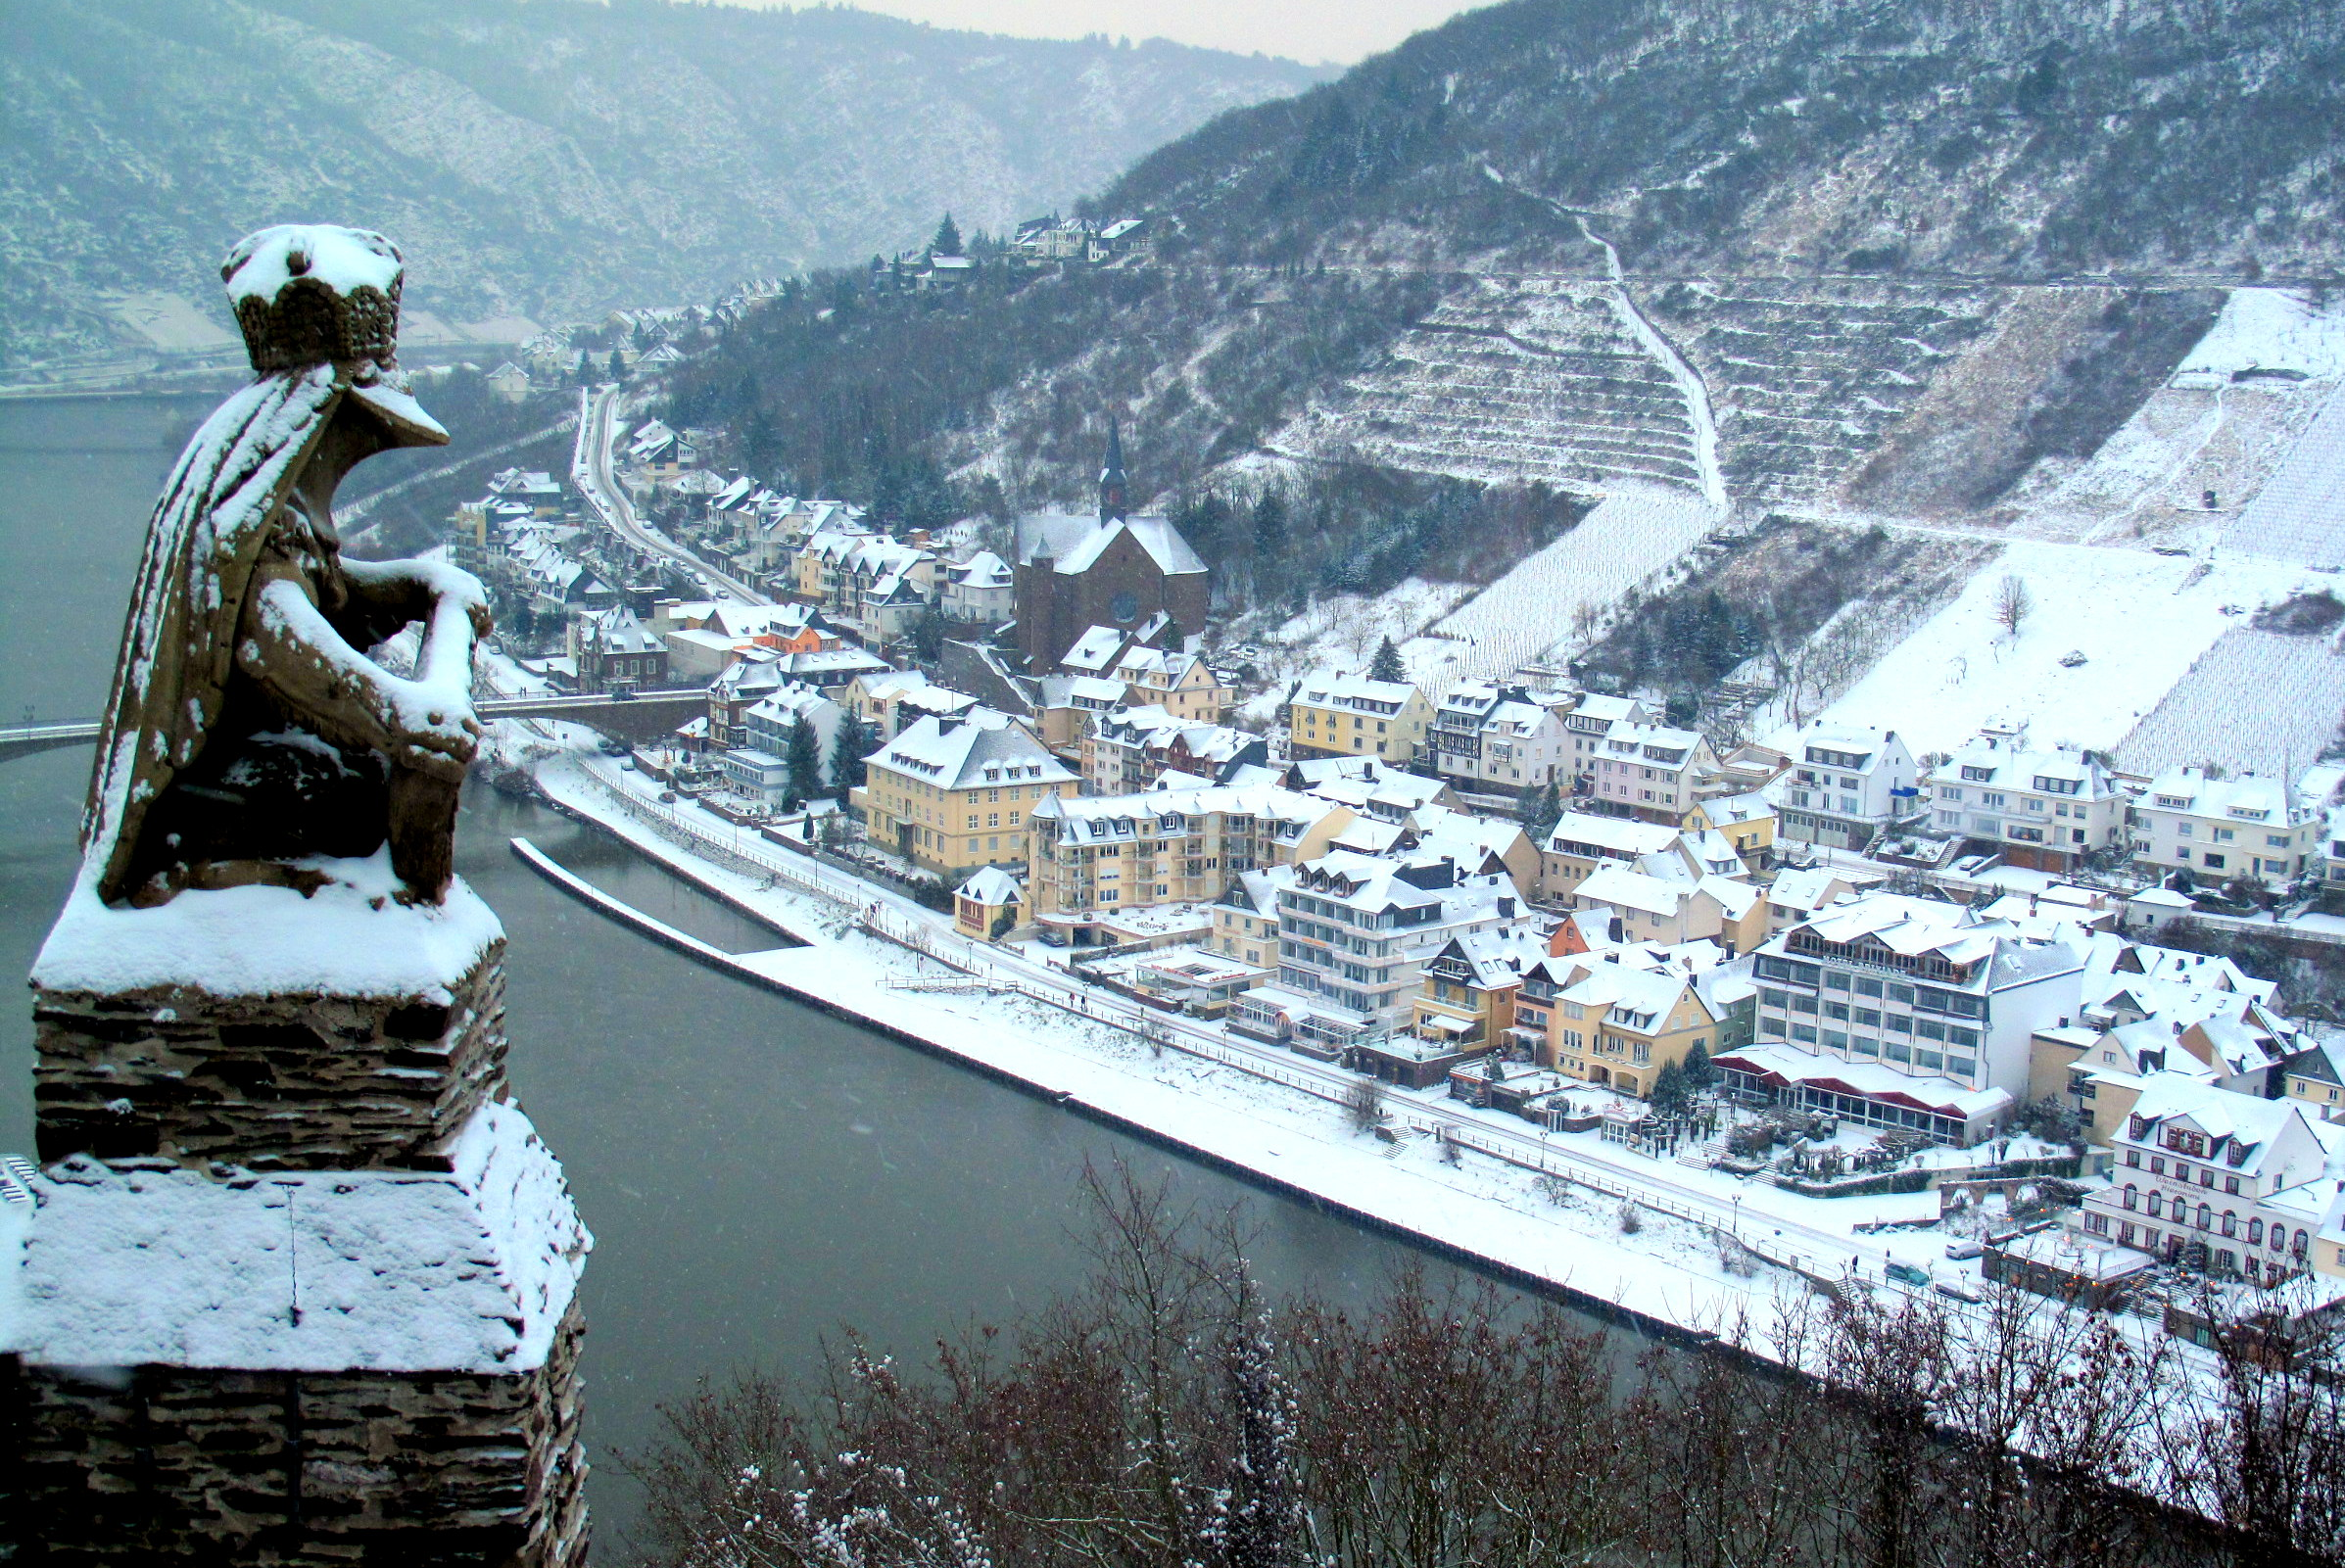 Under a blanket of snow – Scenes from Cochem, Germany